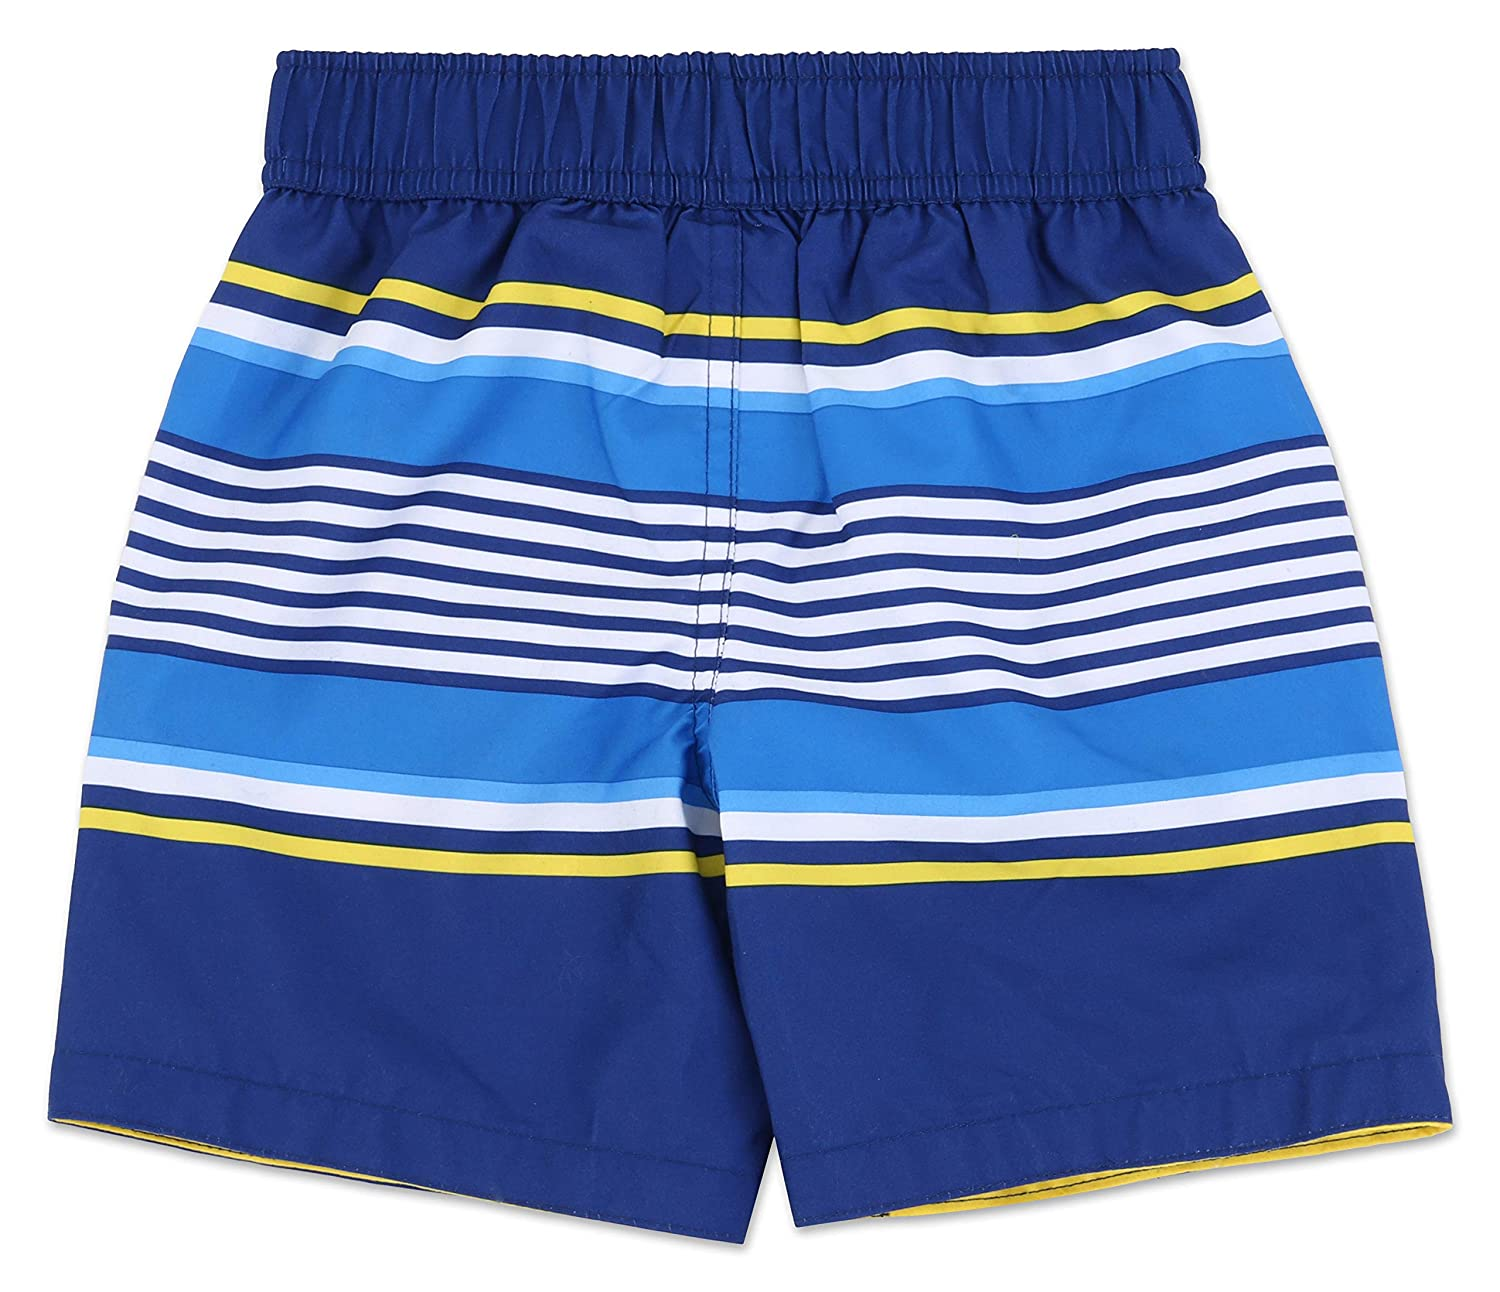 Dreamwave Toddler Boy Authentic Character Swim Trunk UPF 50